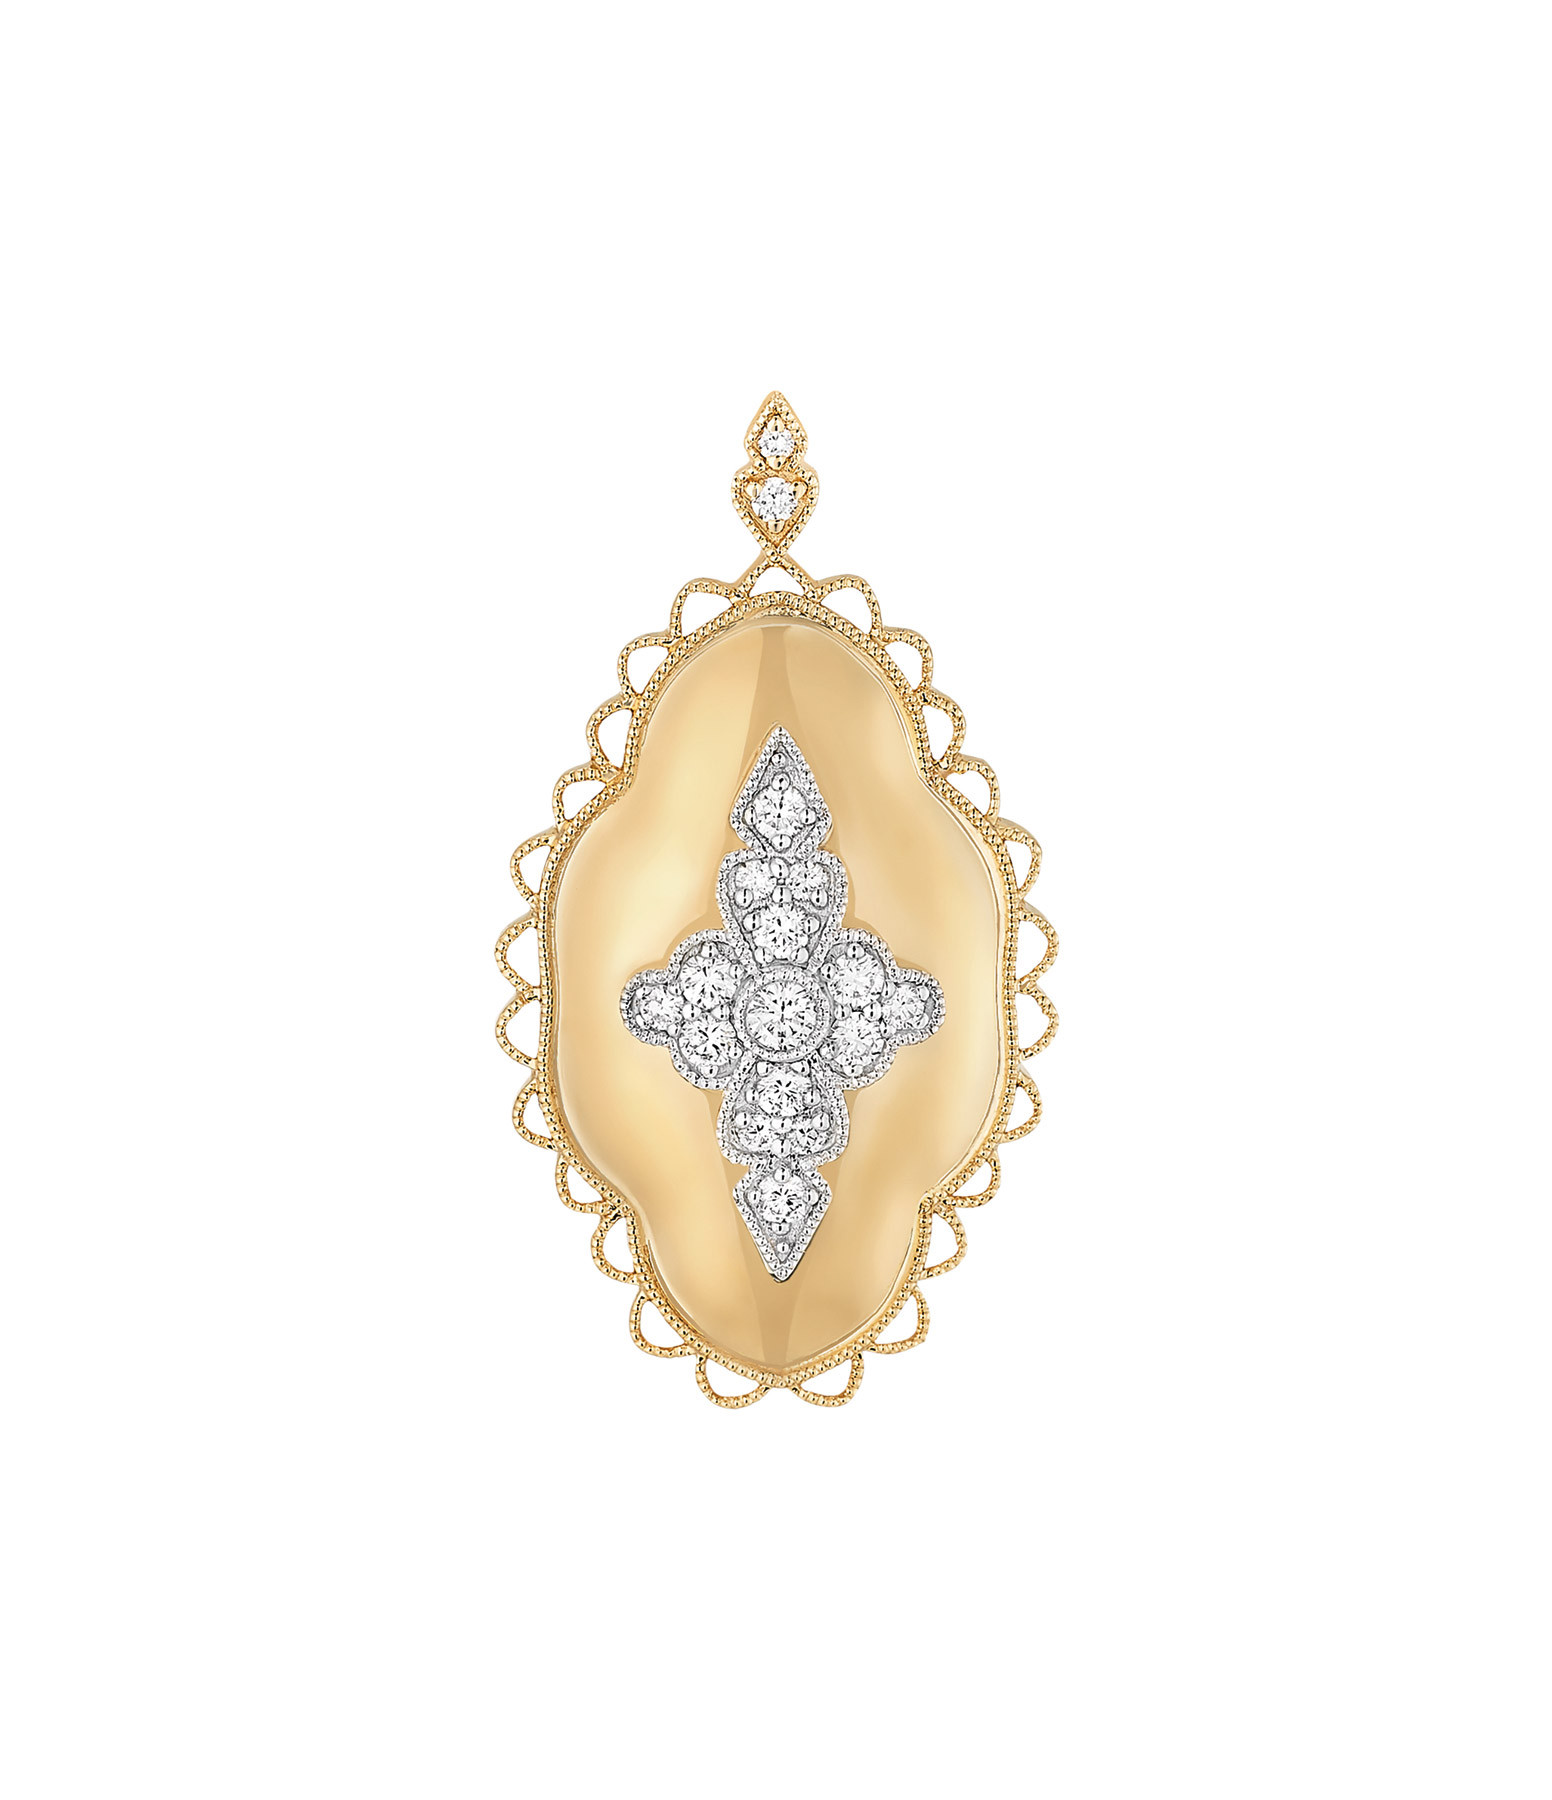 STONE PARIS - Pendentif Jade Diamants Or Jaune et Blanc